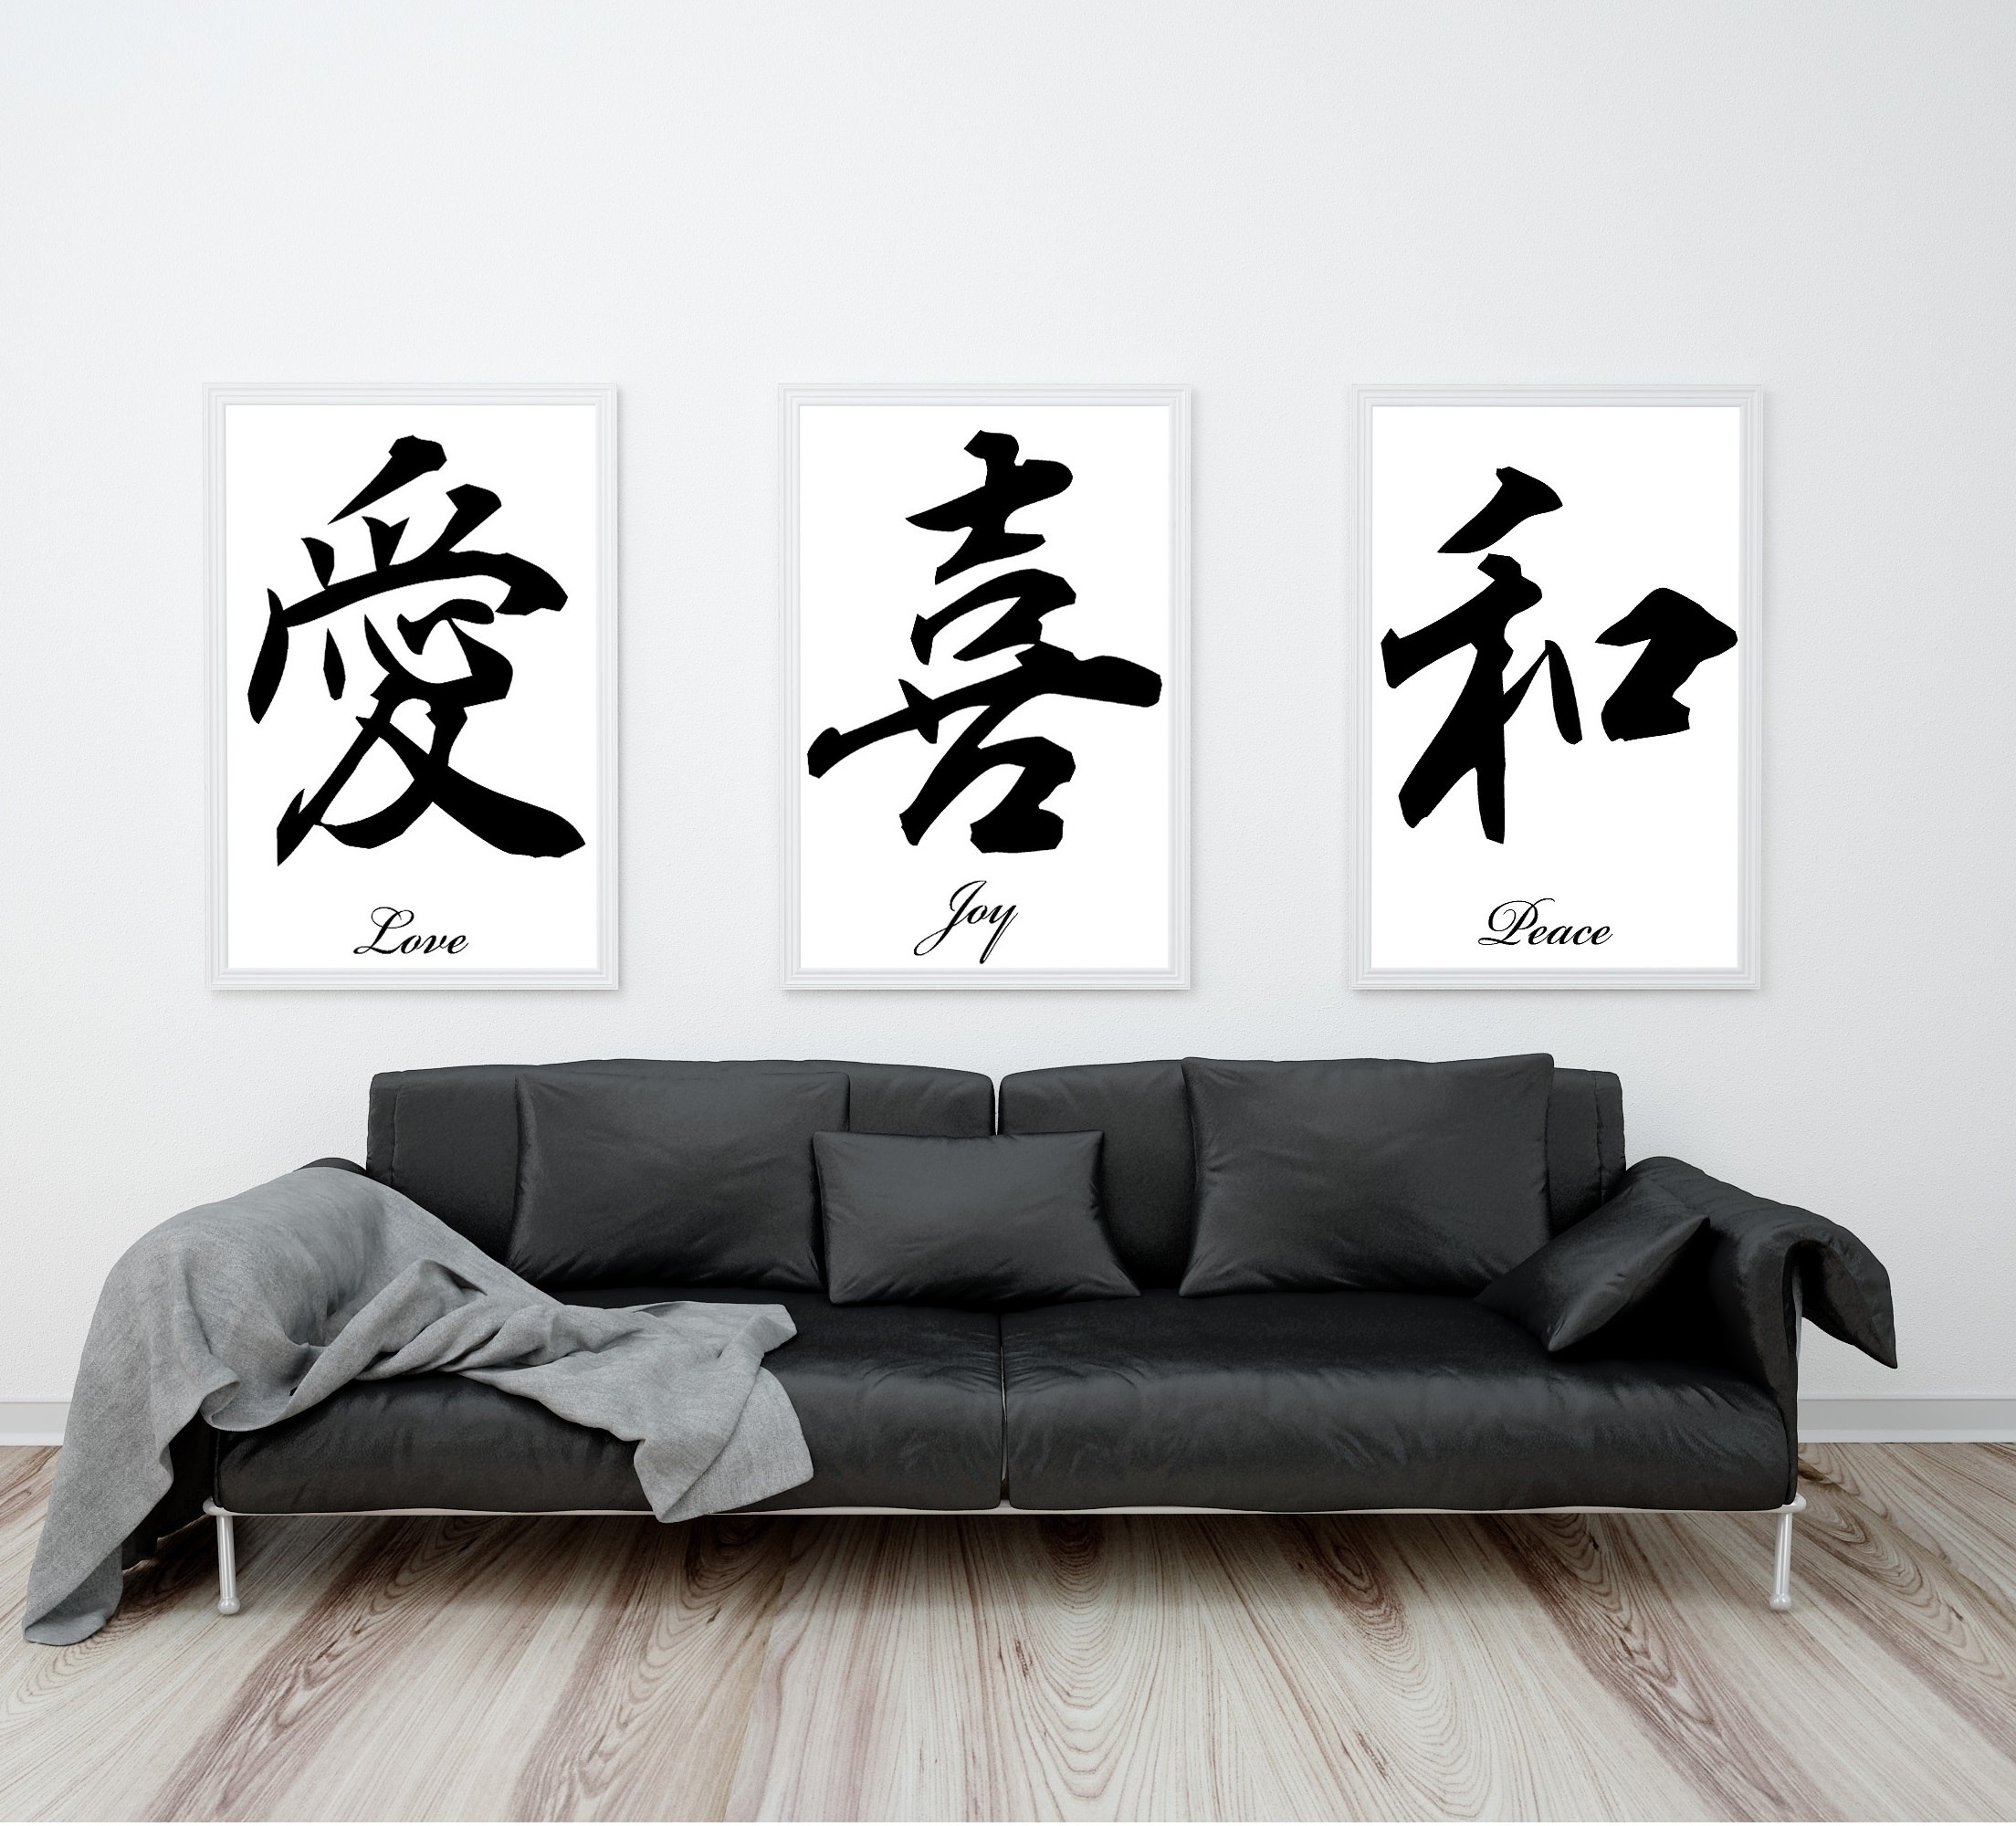 Japanese Wall Decor | Fresh4home Within Recent Japanese Wall Art (View 7 of 20)